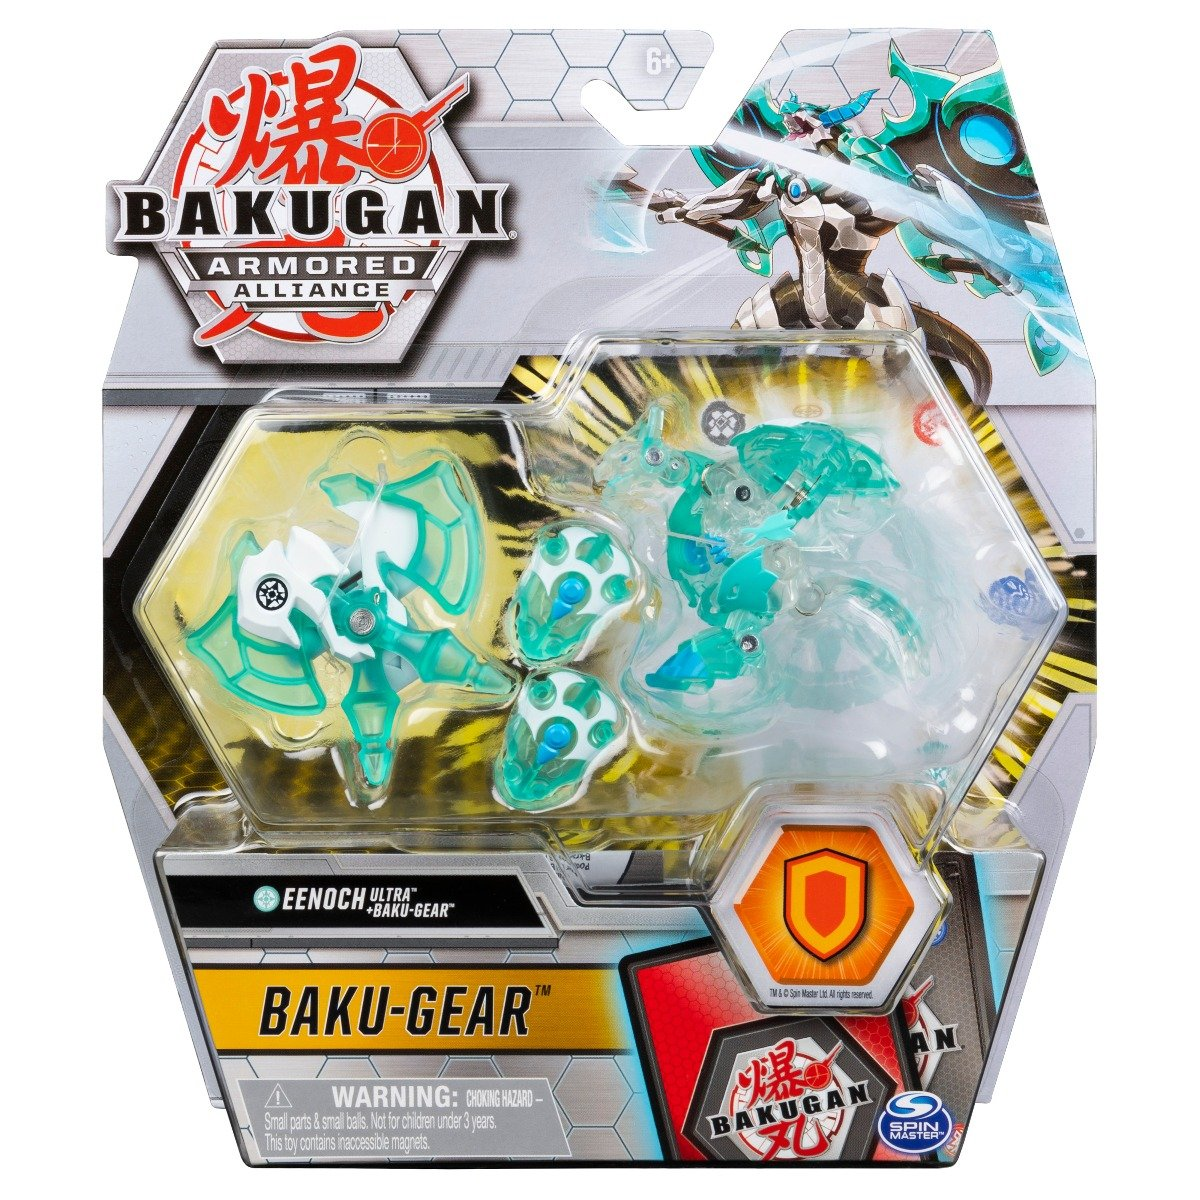 Figurina Bakugan Armored Alliance, Eenoch Ultra, Baku-Gear 20124274